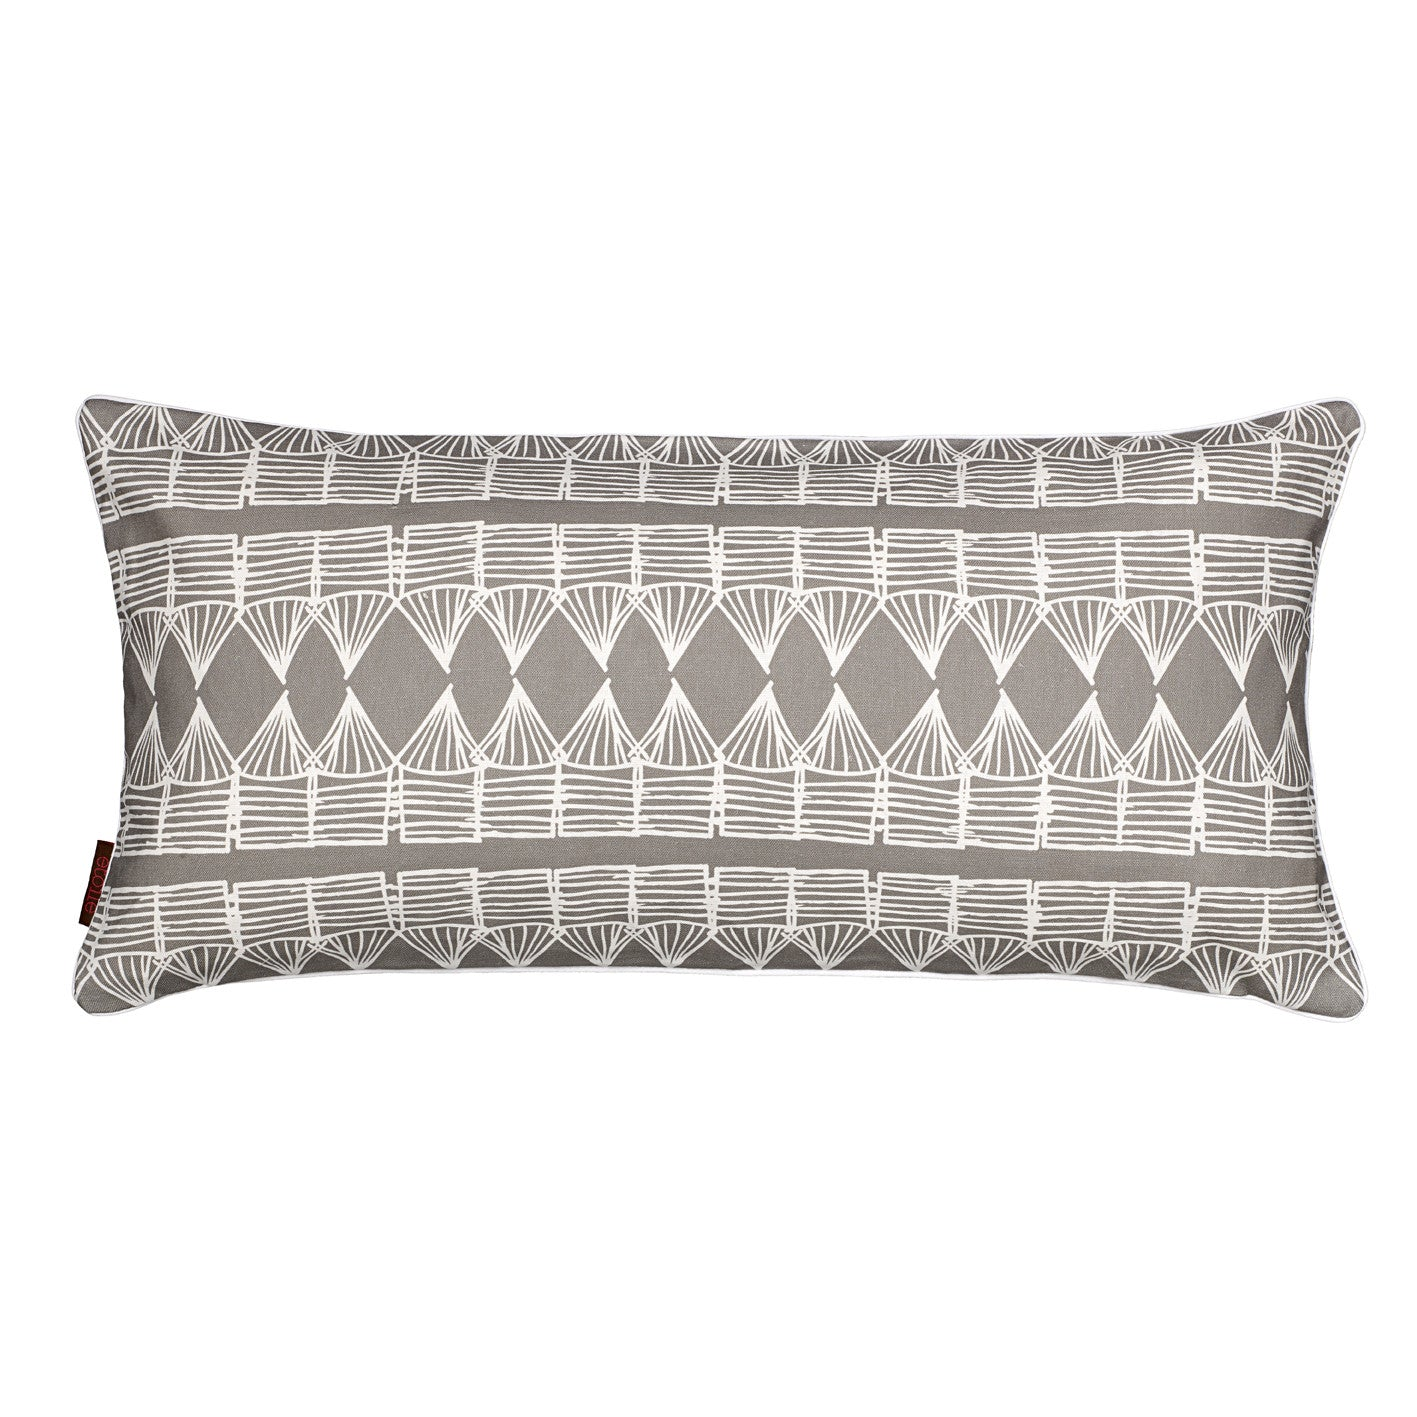 Tiki Huts Pattern Rectangle Decorative Throw Pillow in Light Dove Grey 30x60cm 12x24""